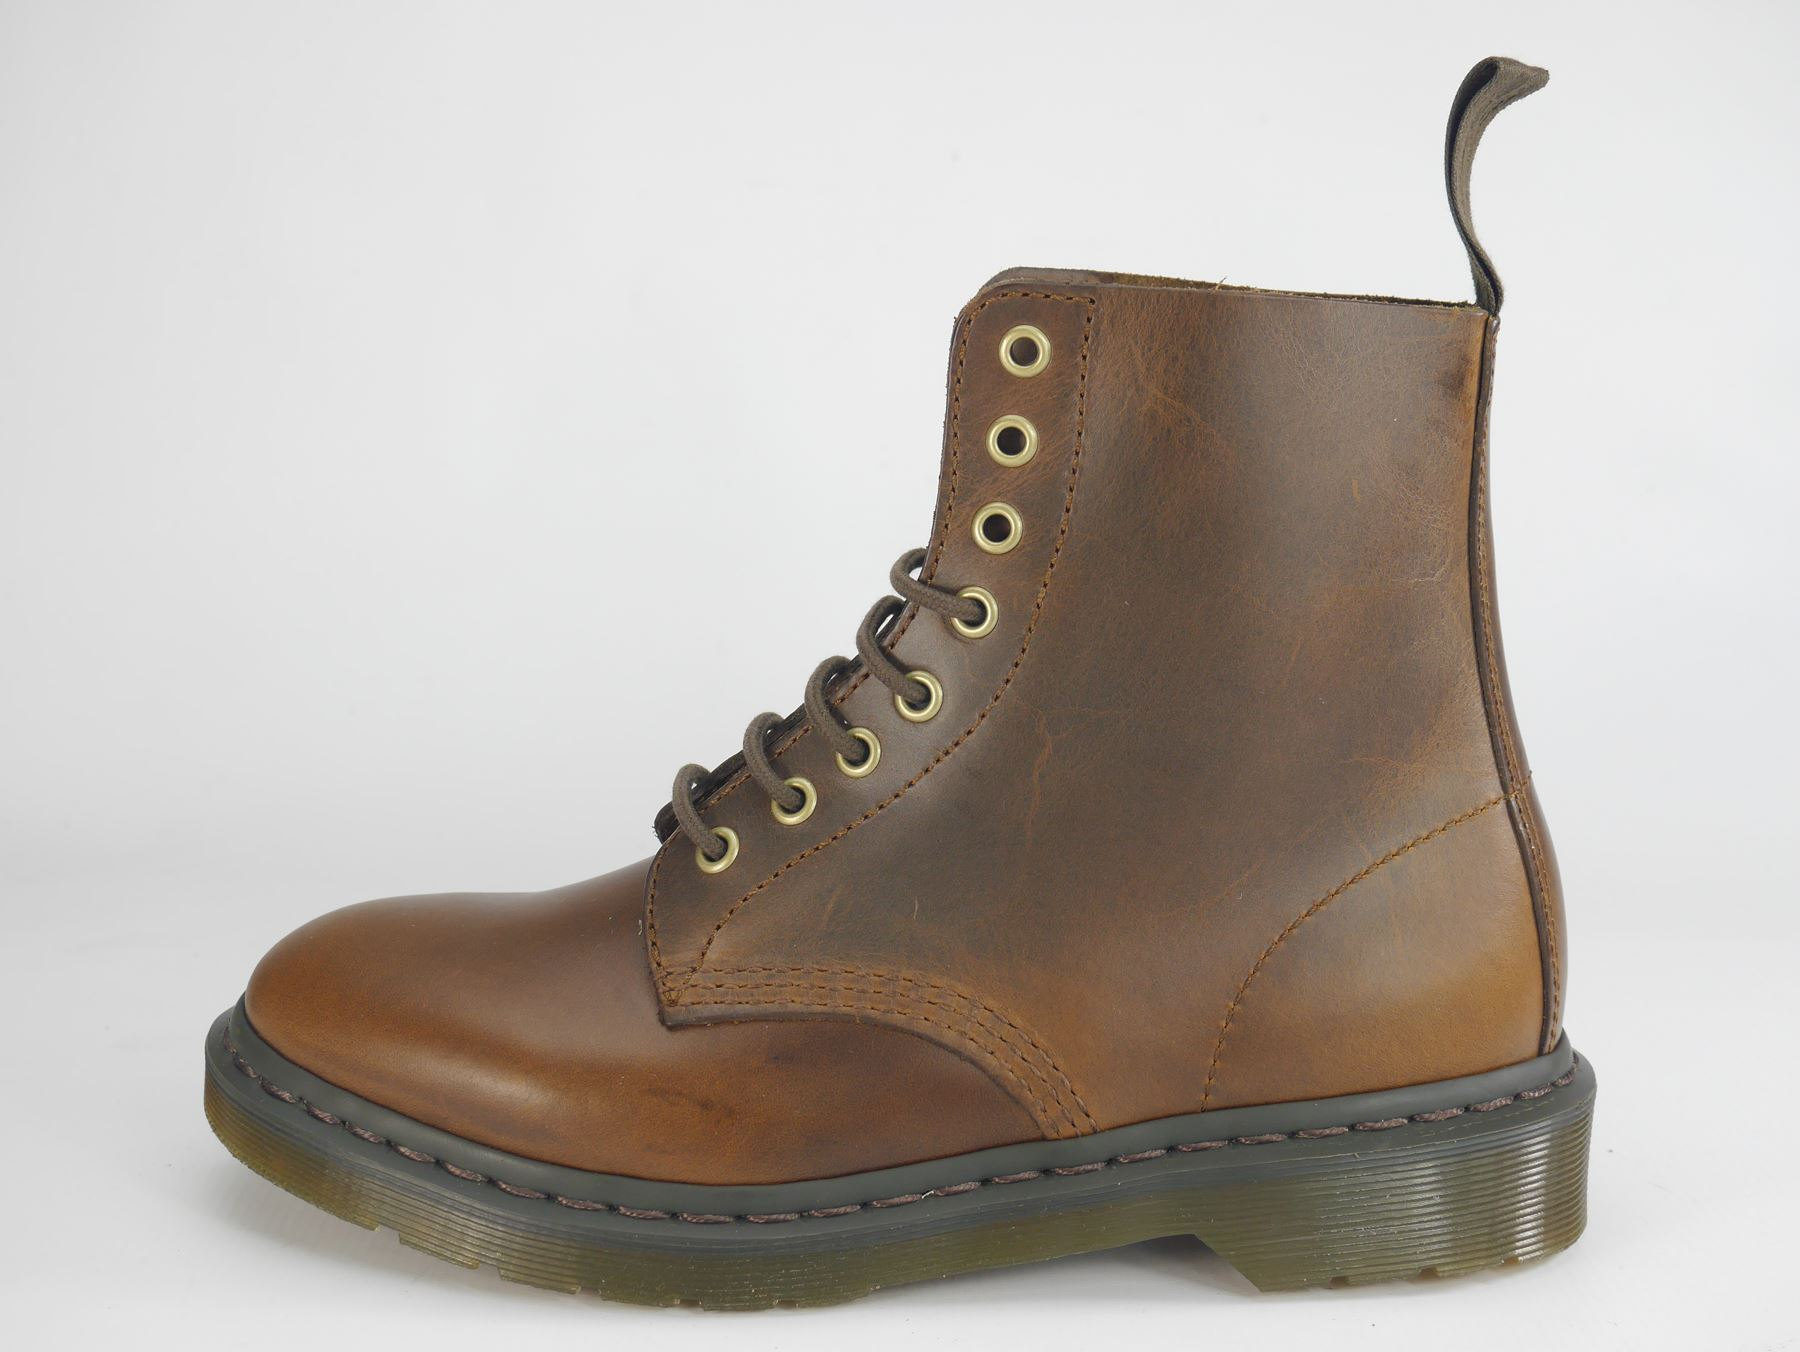 Zapatos especiales con descuento Dr Martens Pascal 8 Eye 1460 Brown Oxblood Lace Up Ladies Boots